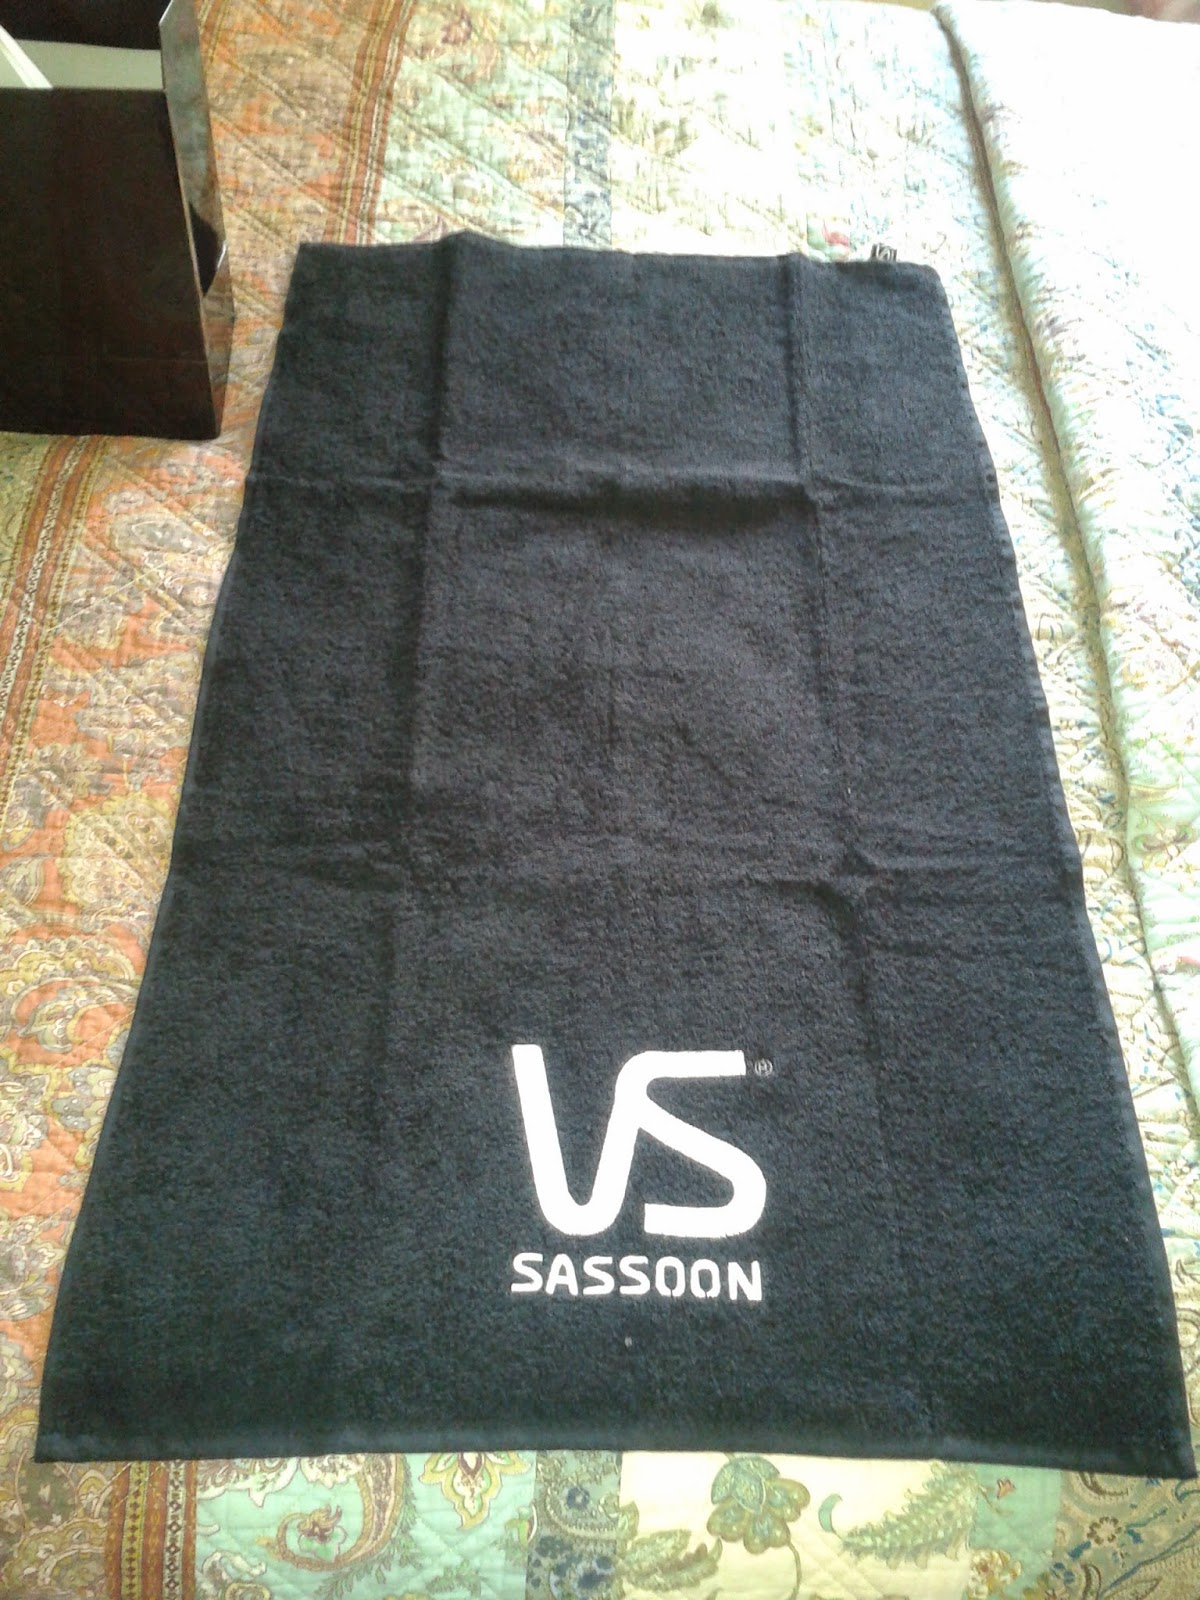 Positive365 Vidal Sassoon Salonist Hair Dye Review